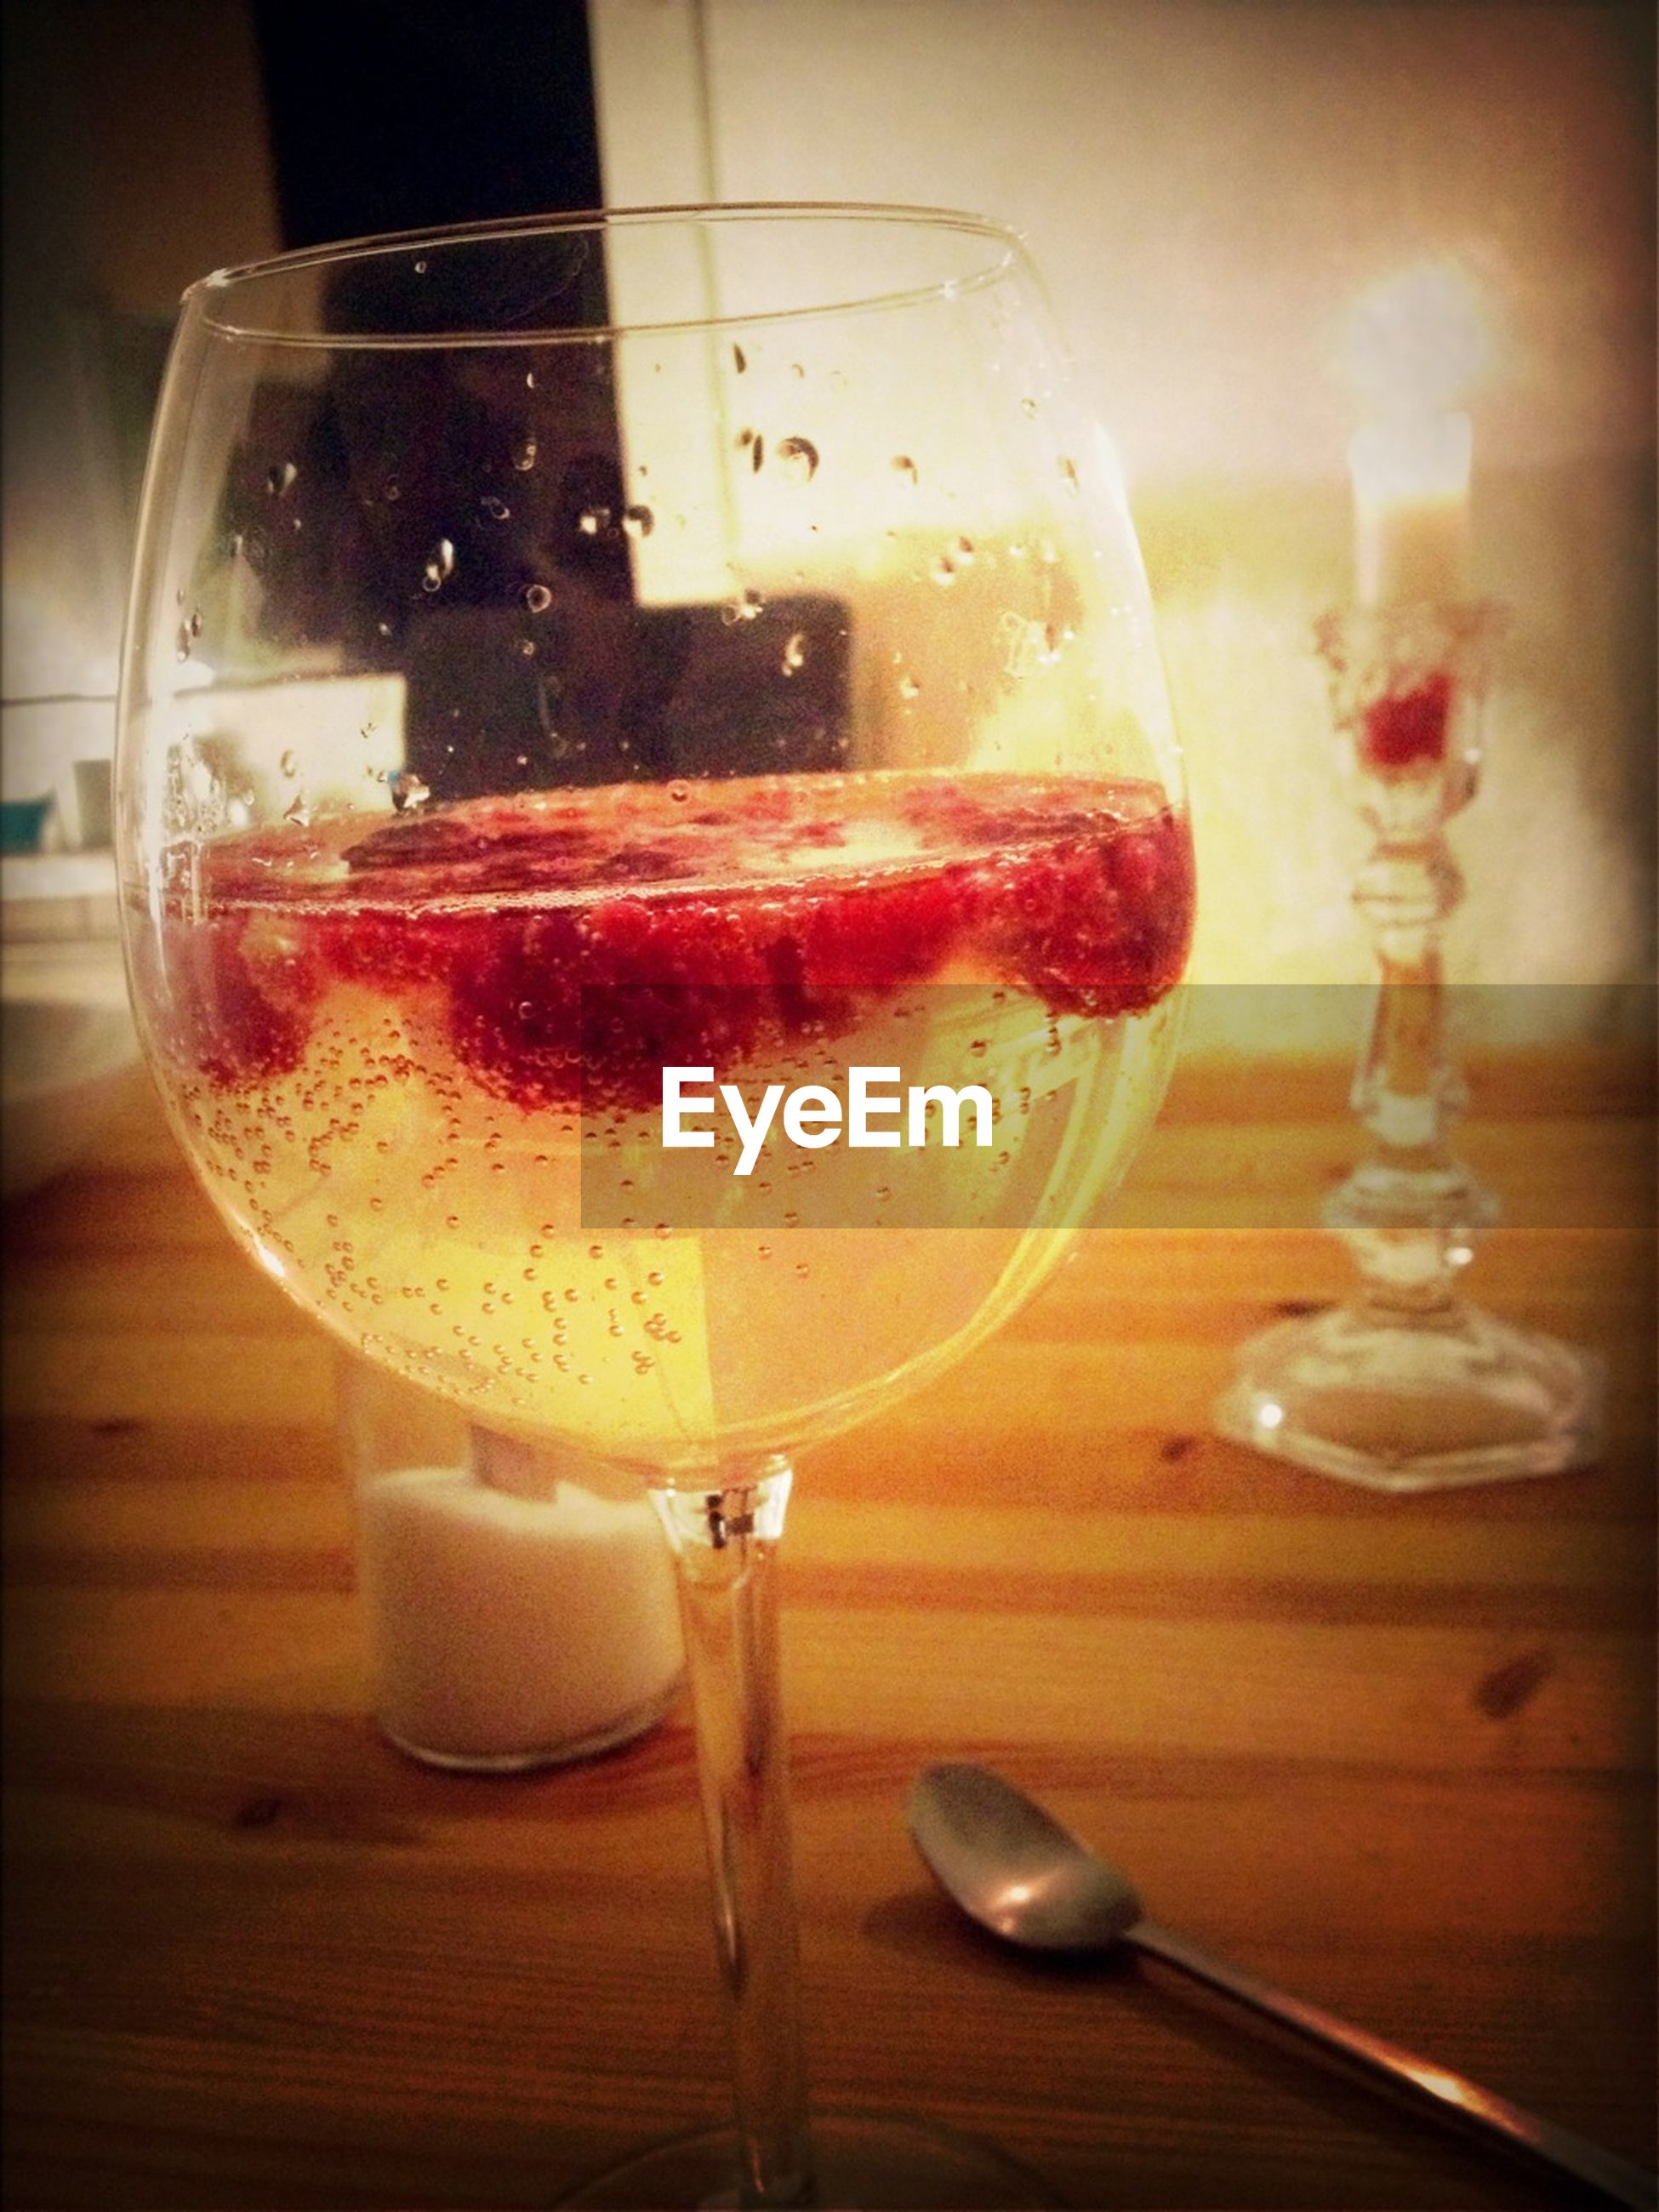 indoors, food and drink, drink, drinking glass, glass - material, table, transparent, refreshment, wineglass, freshness, still life, alcohol, close-up, glass, wine, focus on foreground, alcoholic drink, red wine, no people, drinking straw